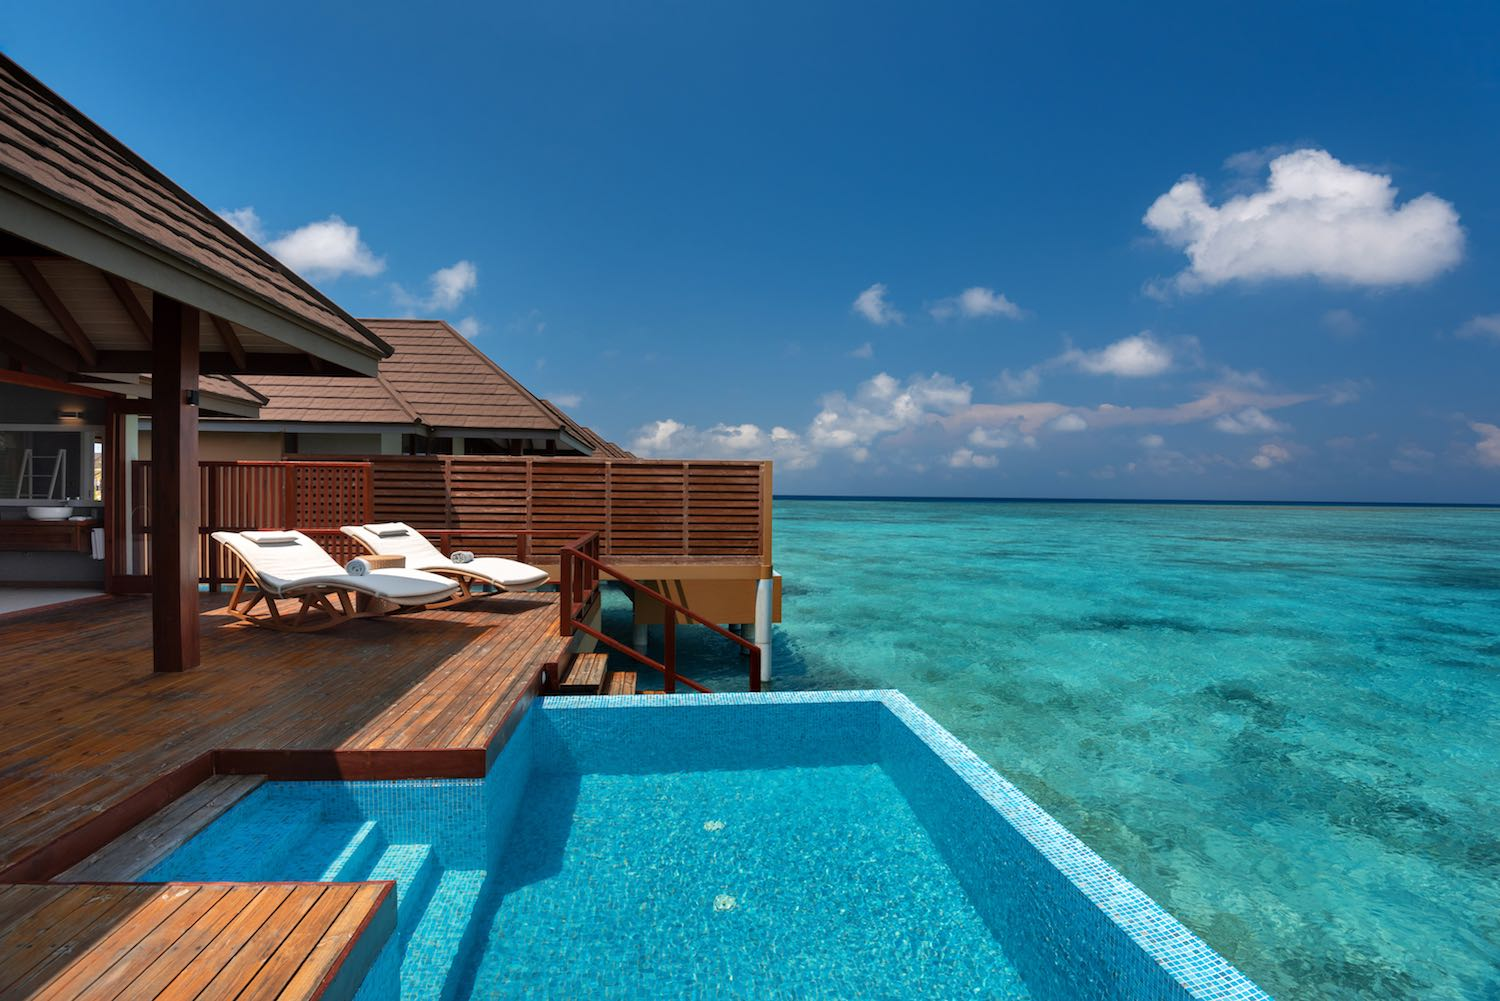 maldives-varu-by-atmosphere-water-villa-with-pool-deck-and-pool-view-holiday-honeymoon-vacation-invite-to-paradise.jpg